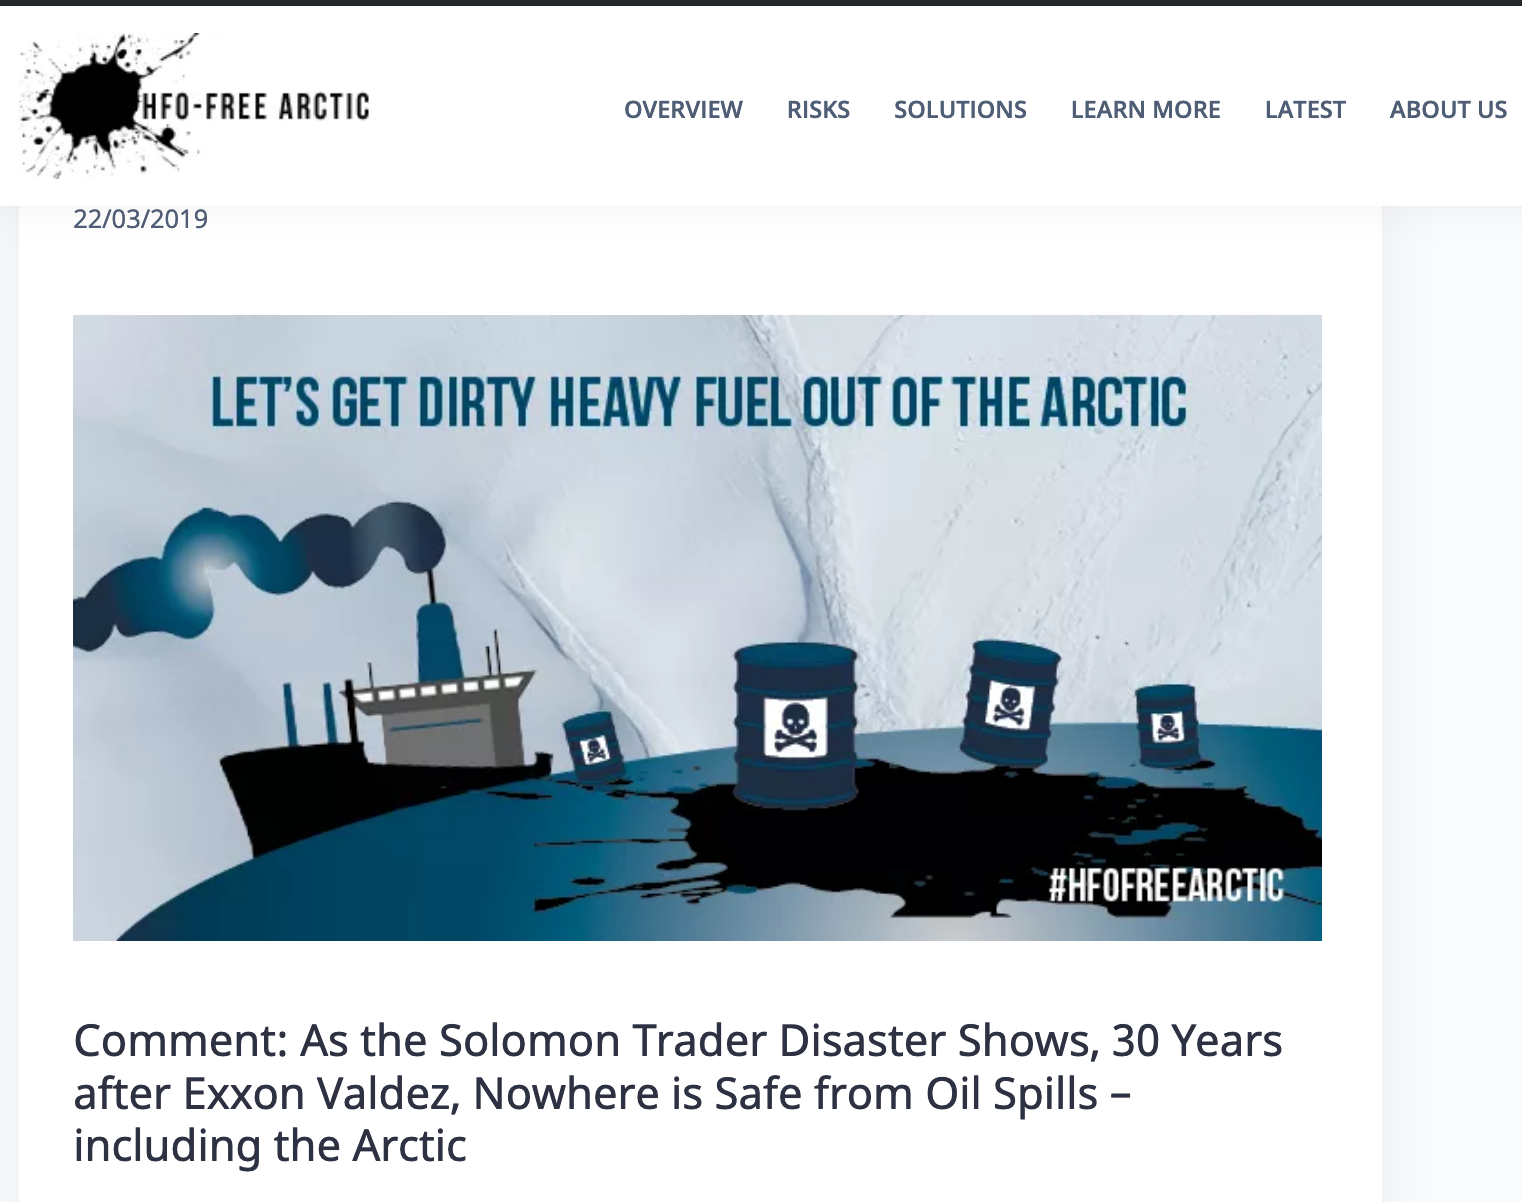 As the Solomon Trader Disaster Shows, 30 Years after Exxon Valdez, Nowhere is Safe from Oil Spills  – including the Arctic